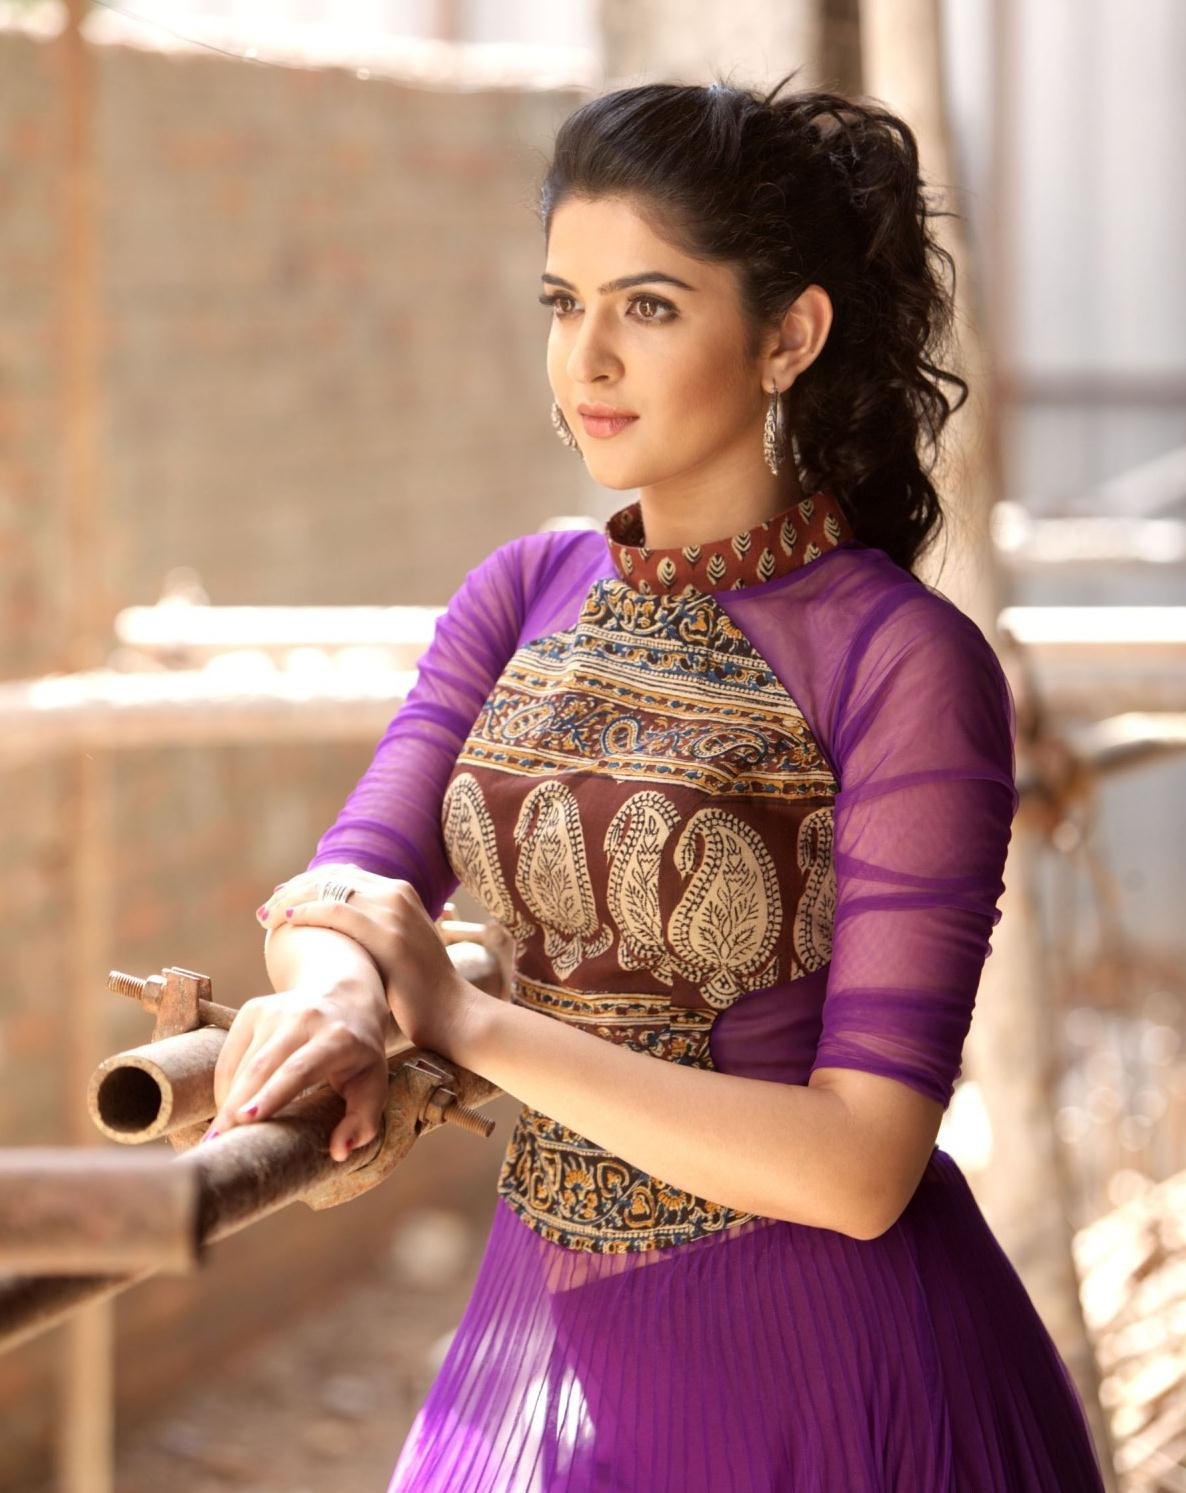 deeksha seth hot & spicy pics photos & hd wallpapers